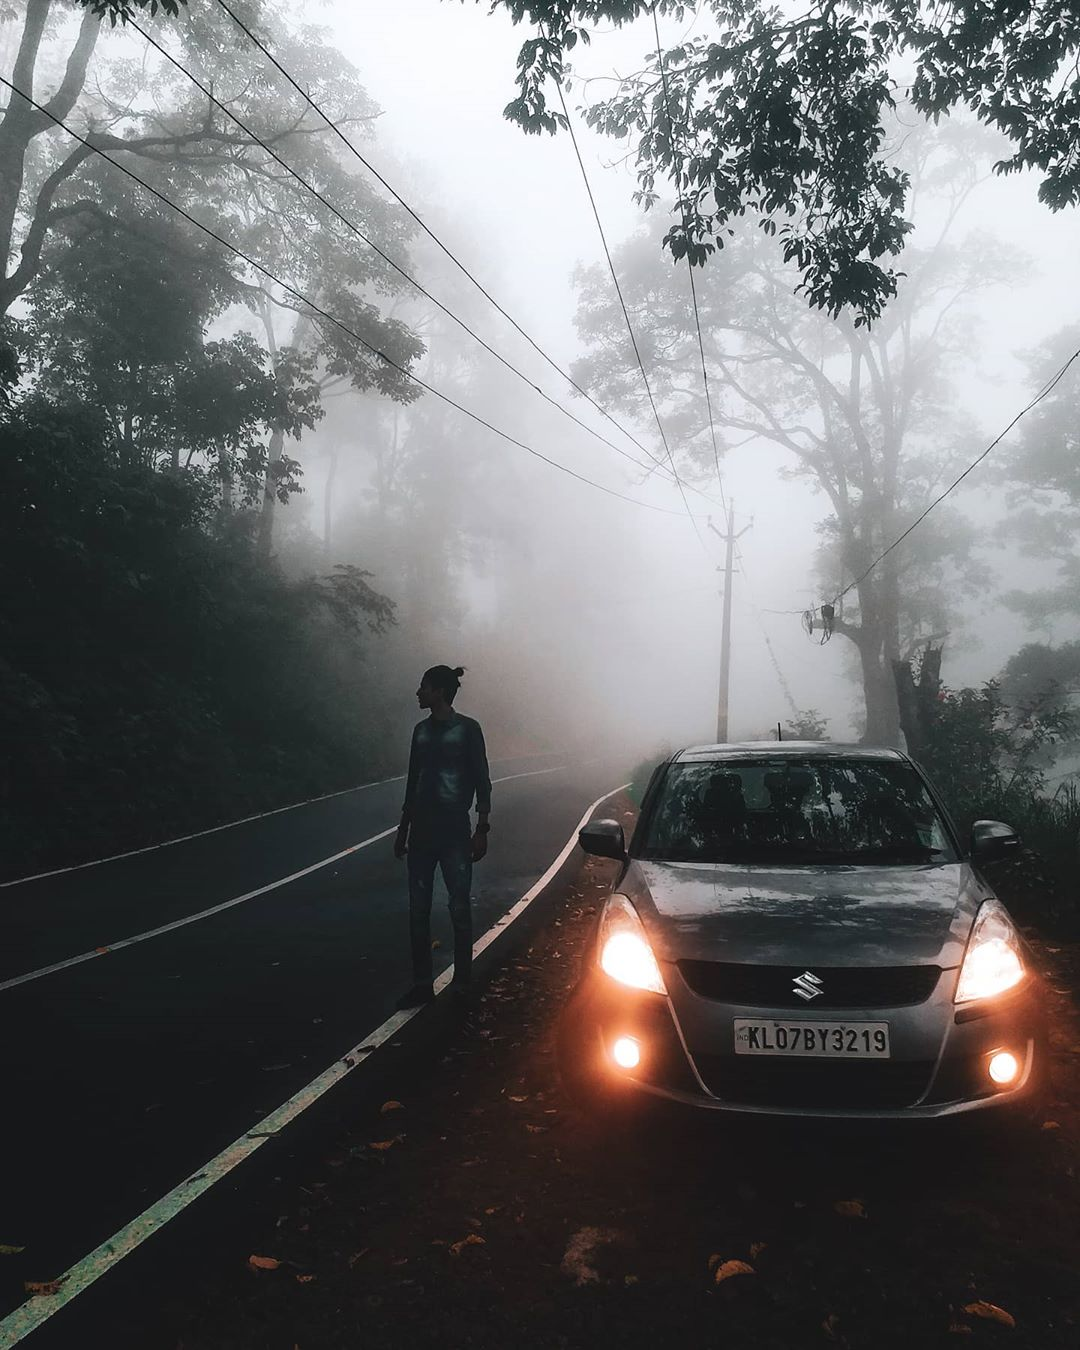 Foggy Weather on a Hill